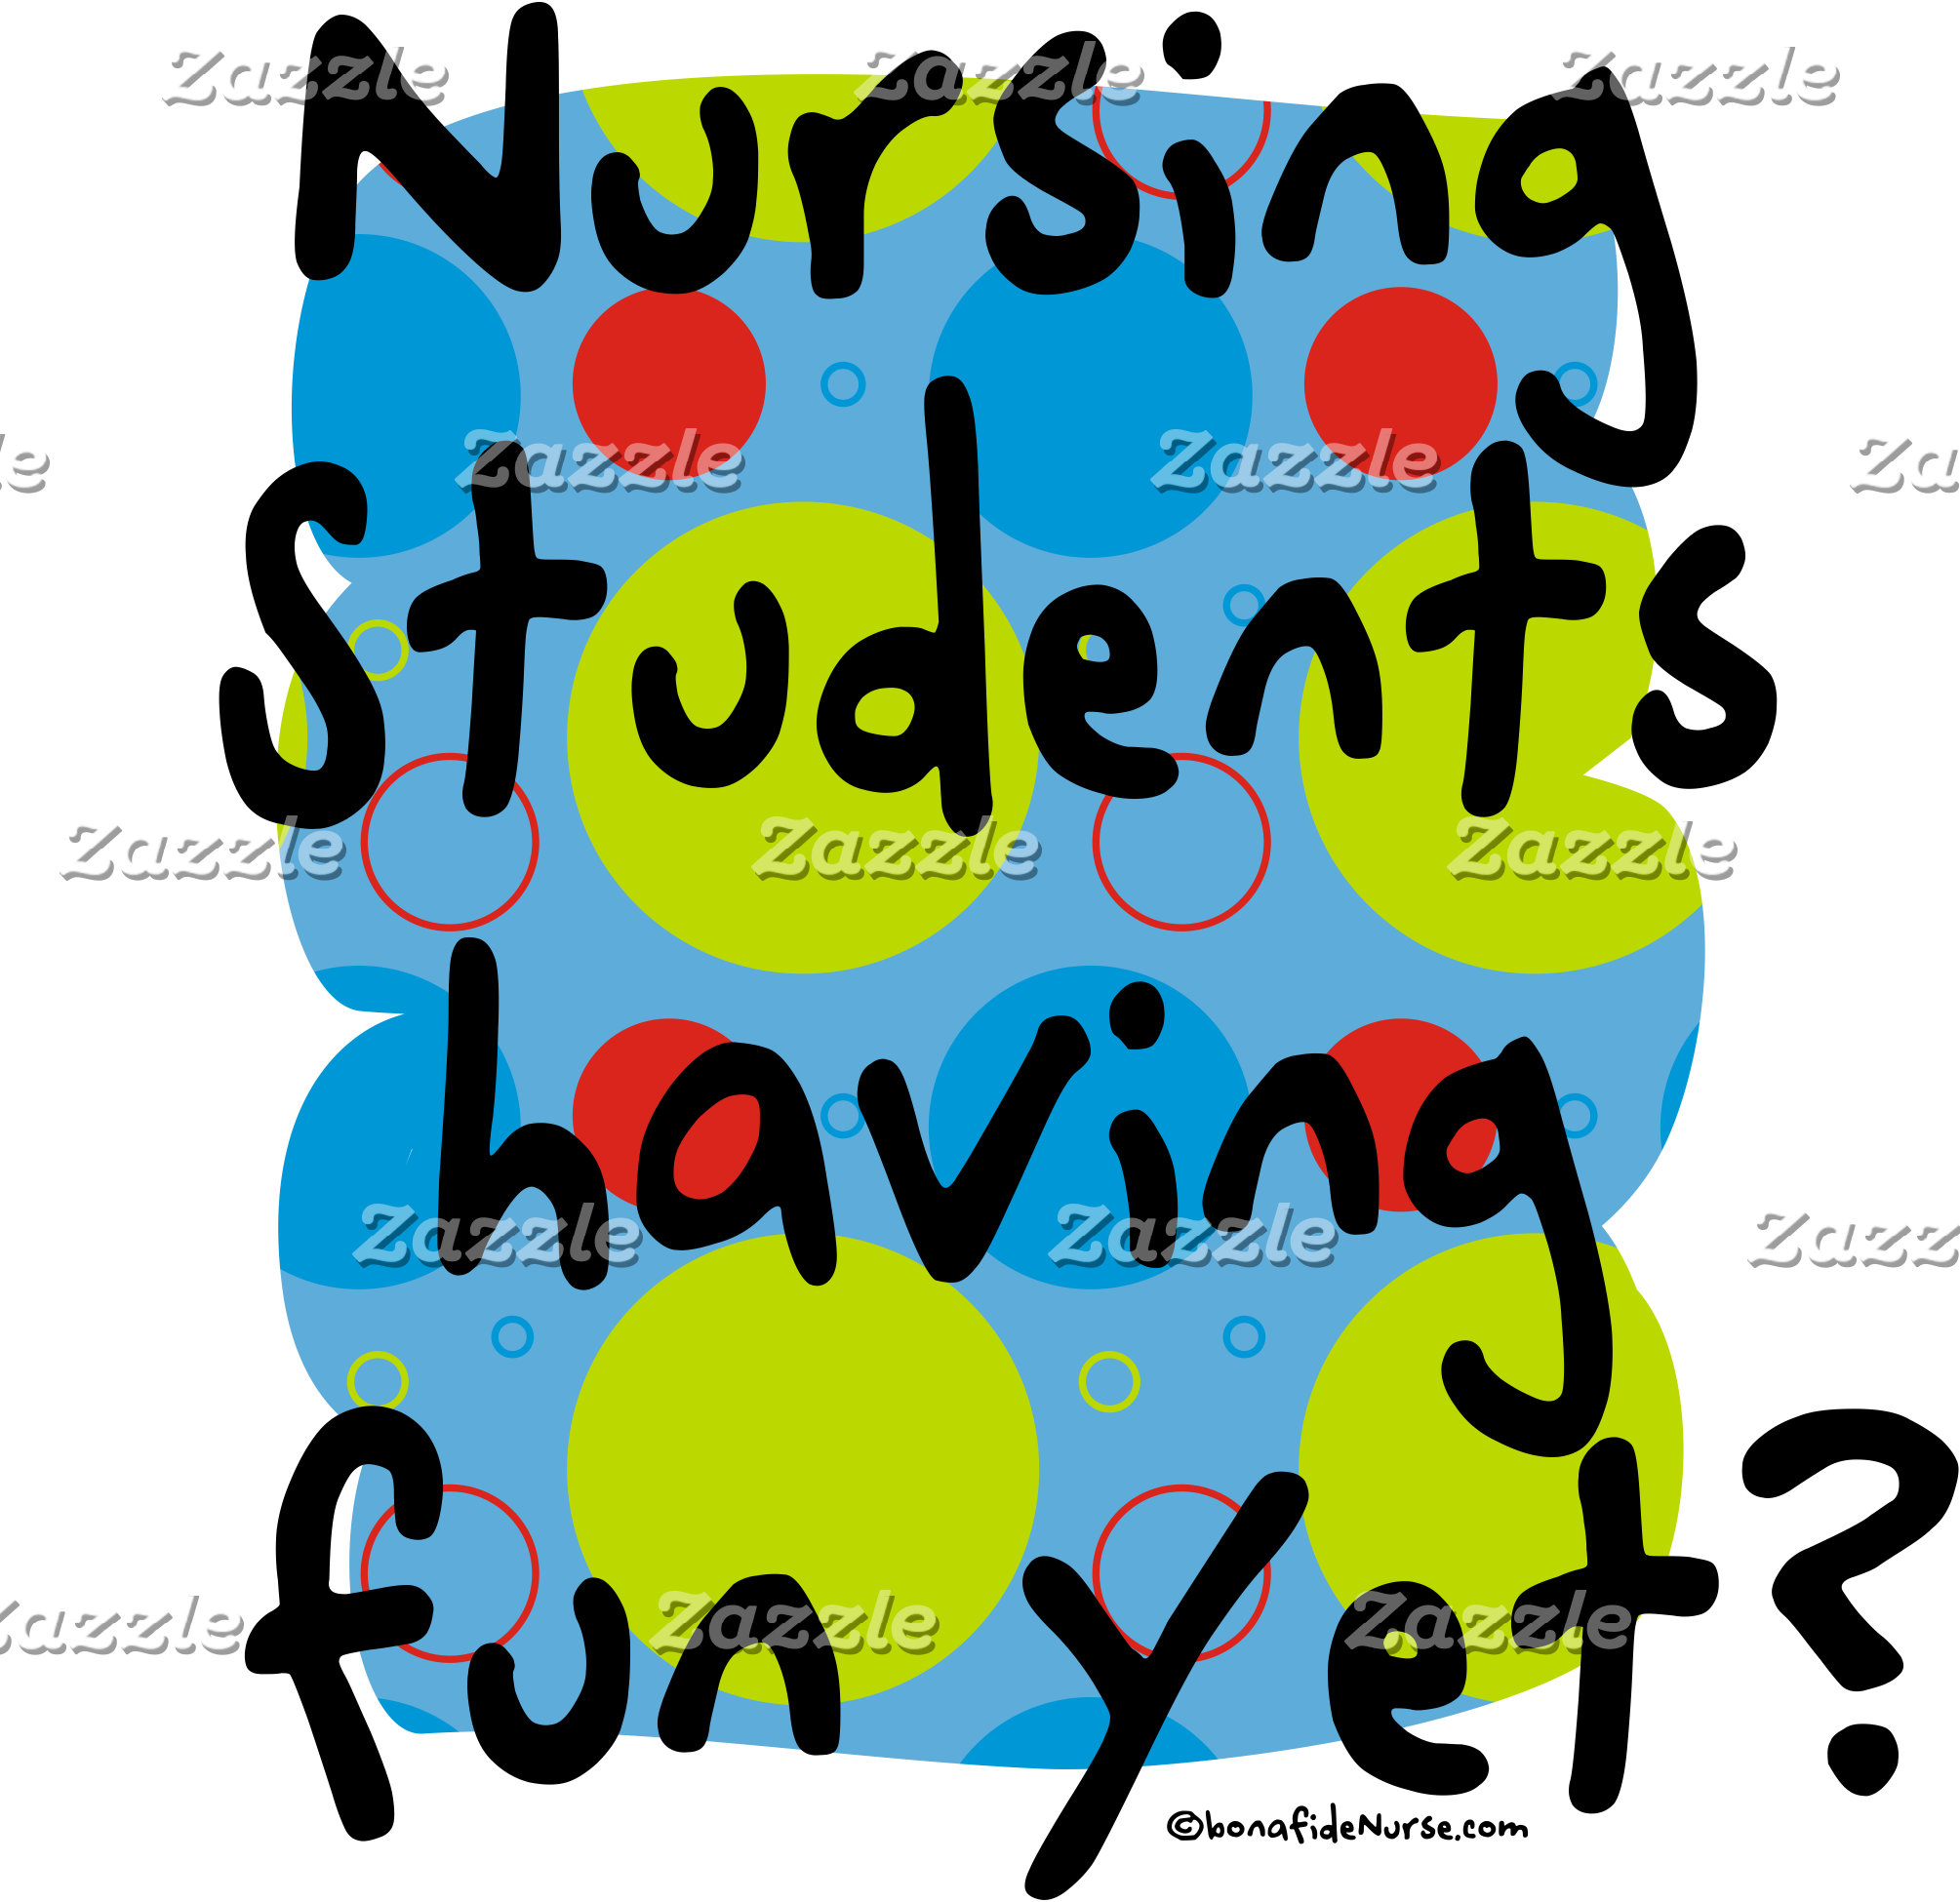 Nursing Student having Fun Yet?